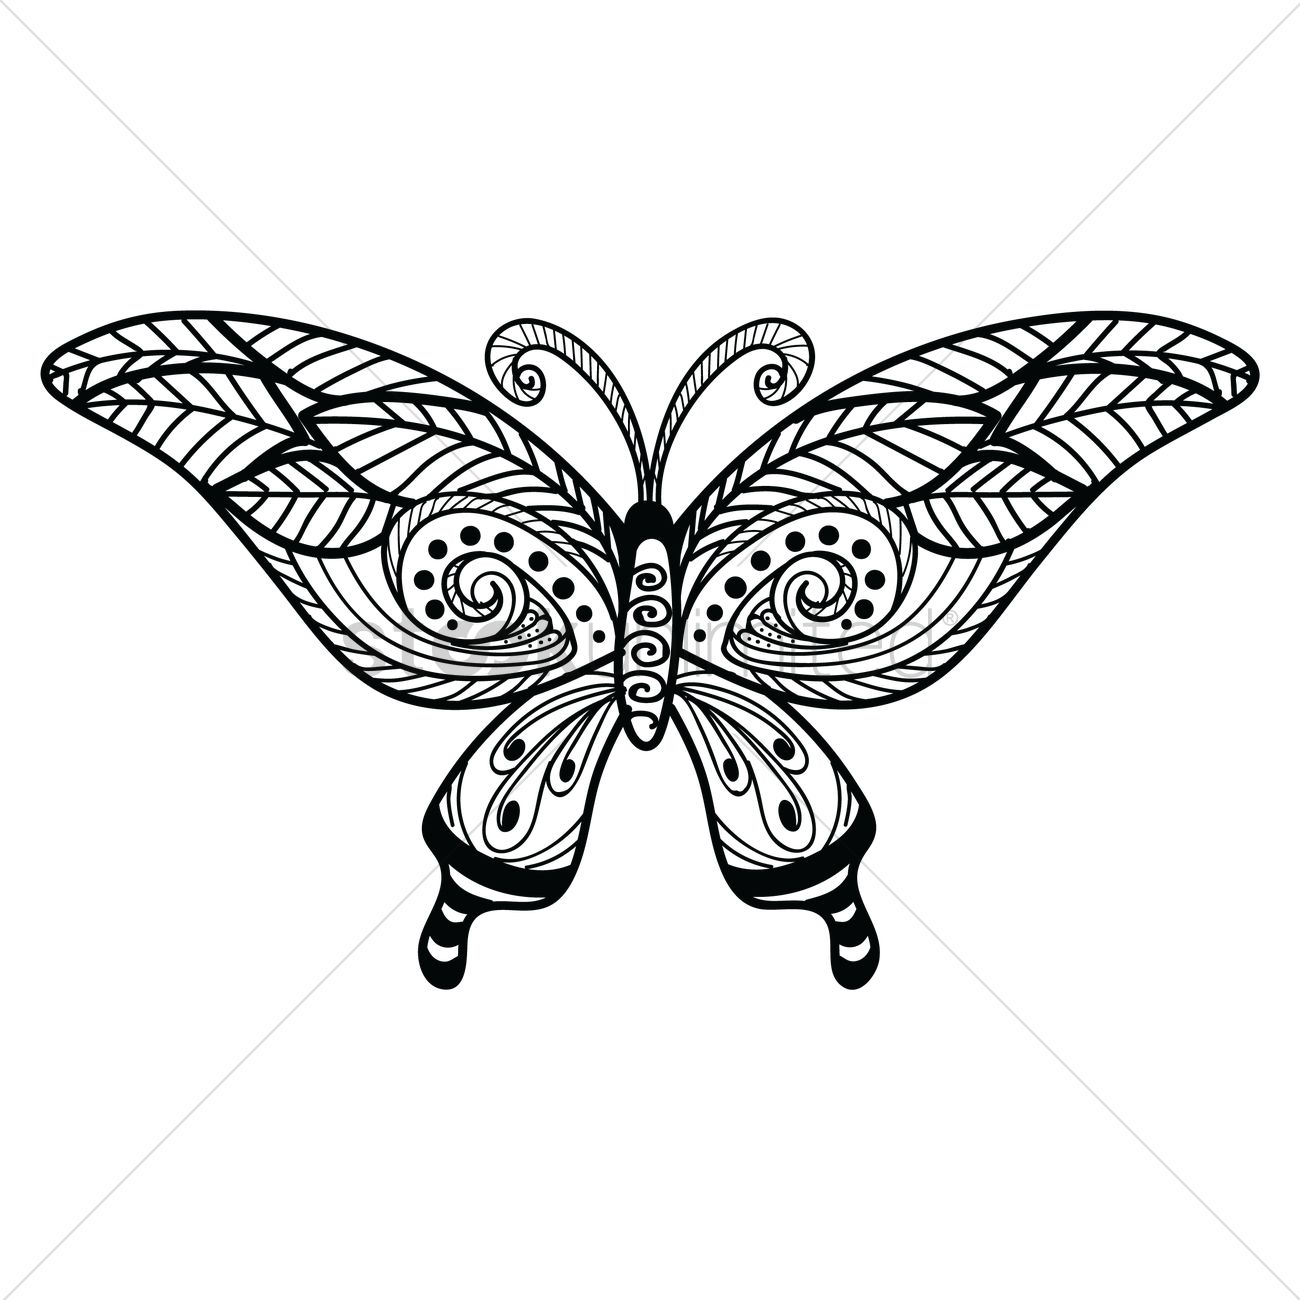 1300x1300 Decorative Butterfly Design Vector Image